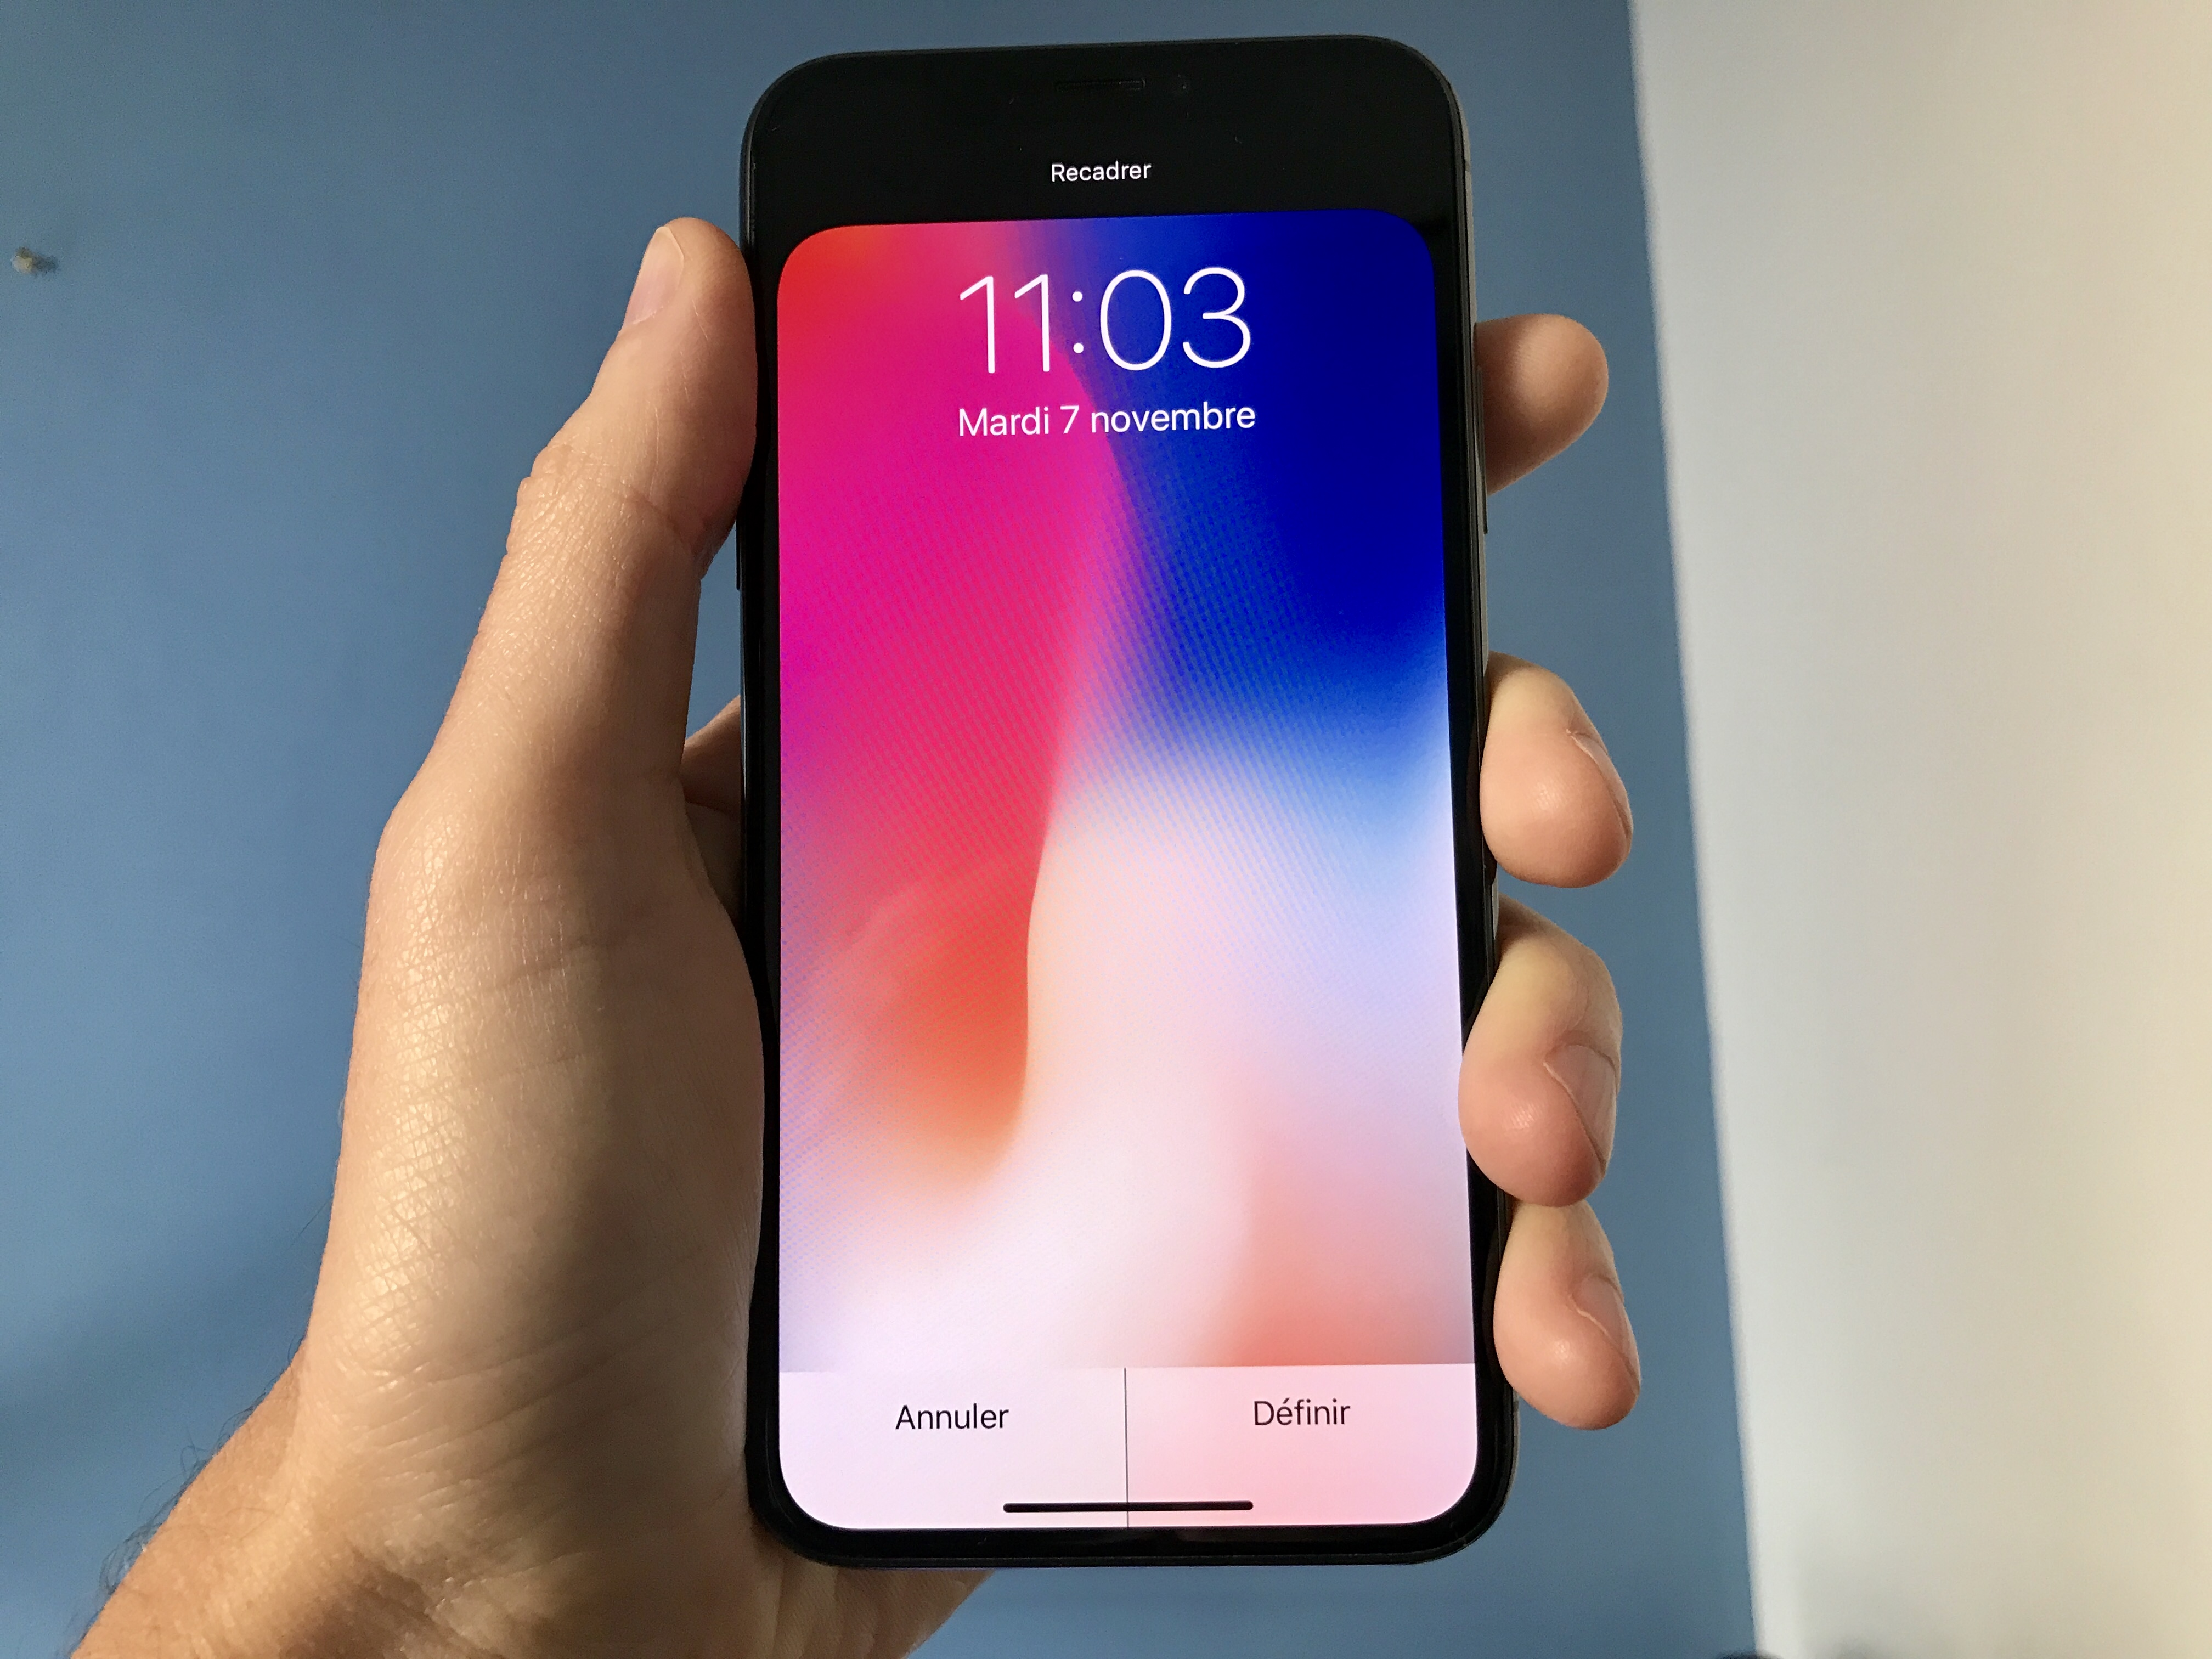 Fond ecran iphone x pour iphone 7